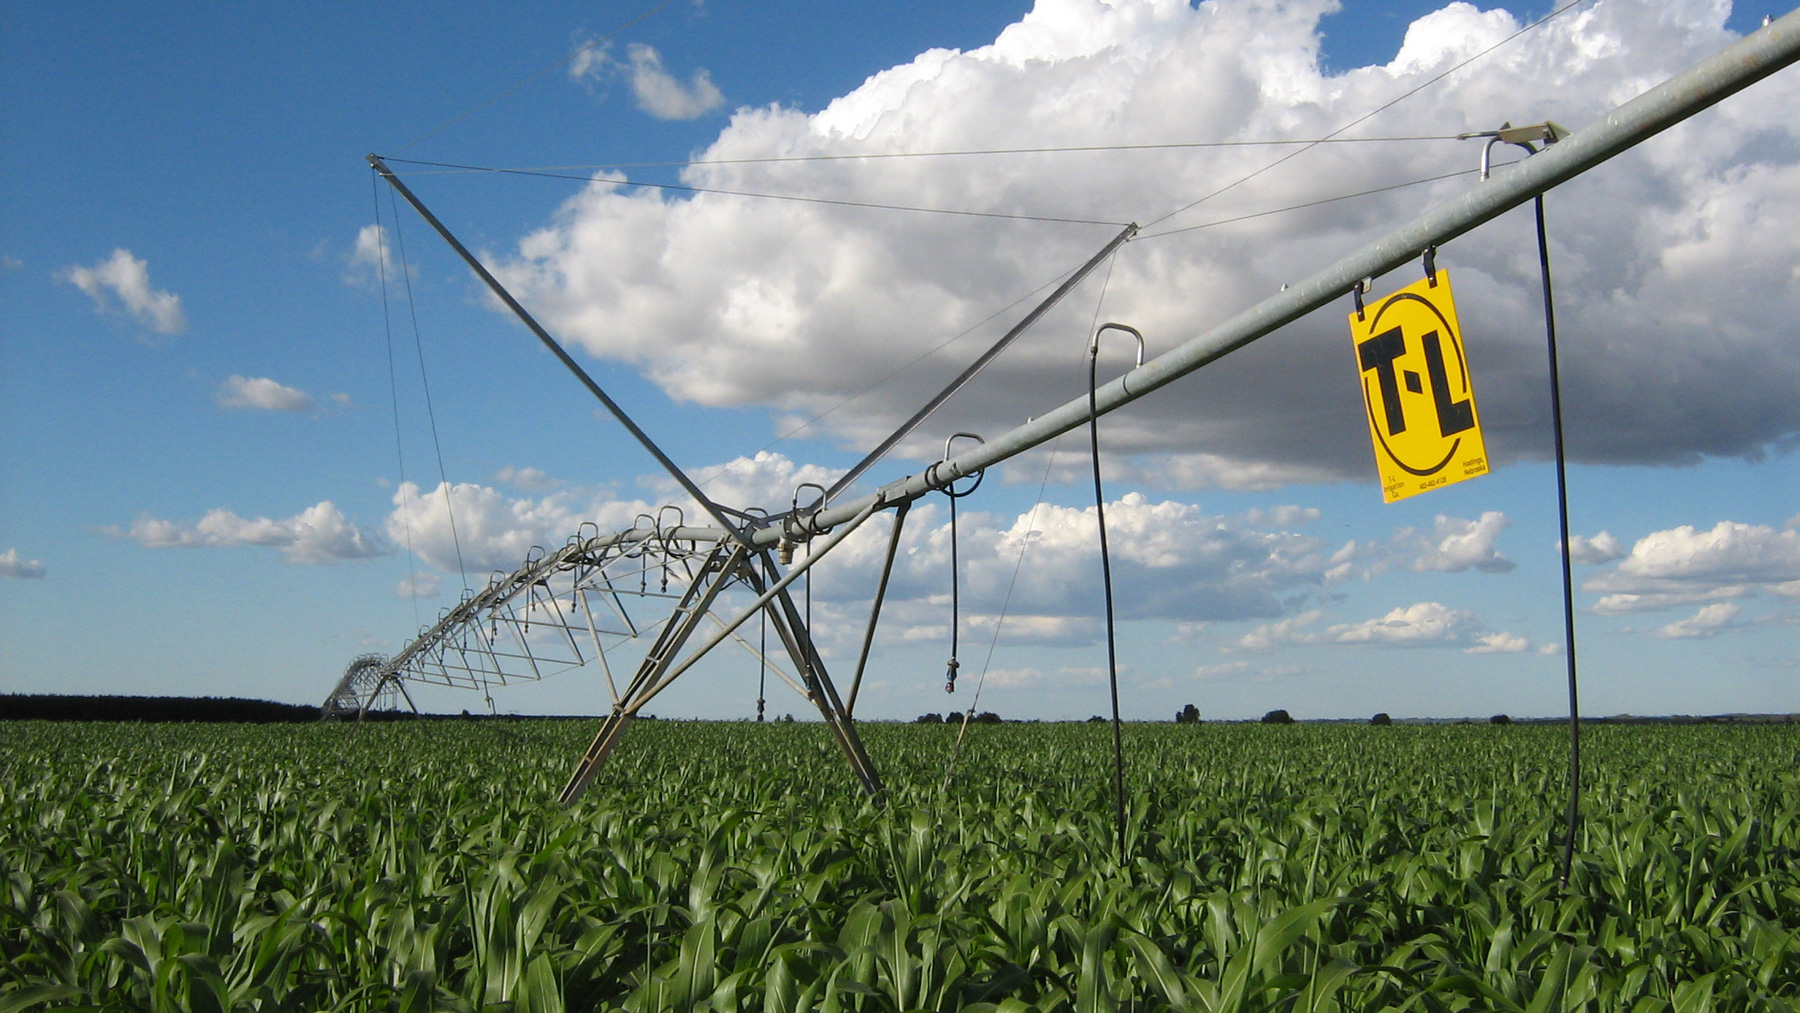 pivot irrigation of corn crops. Photo via Wikimedia Commons